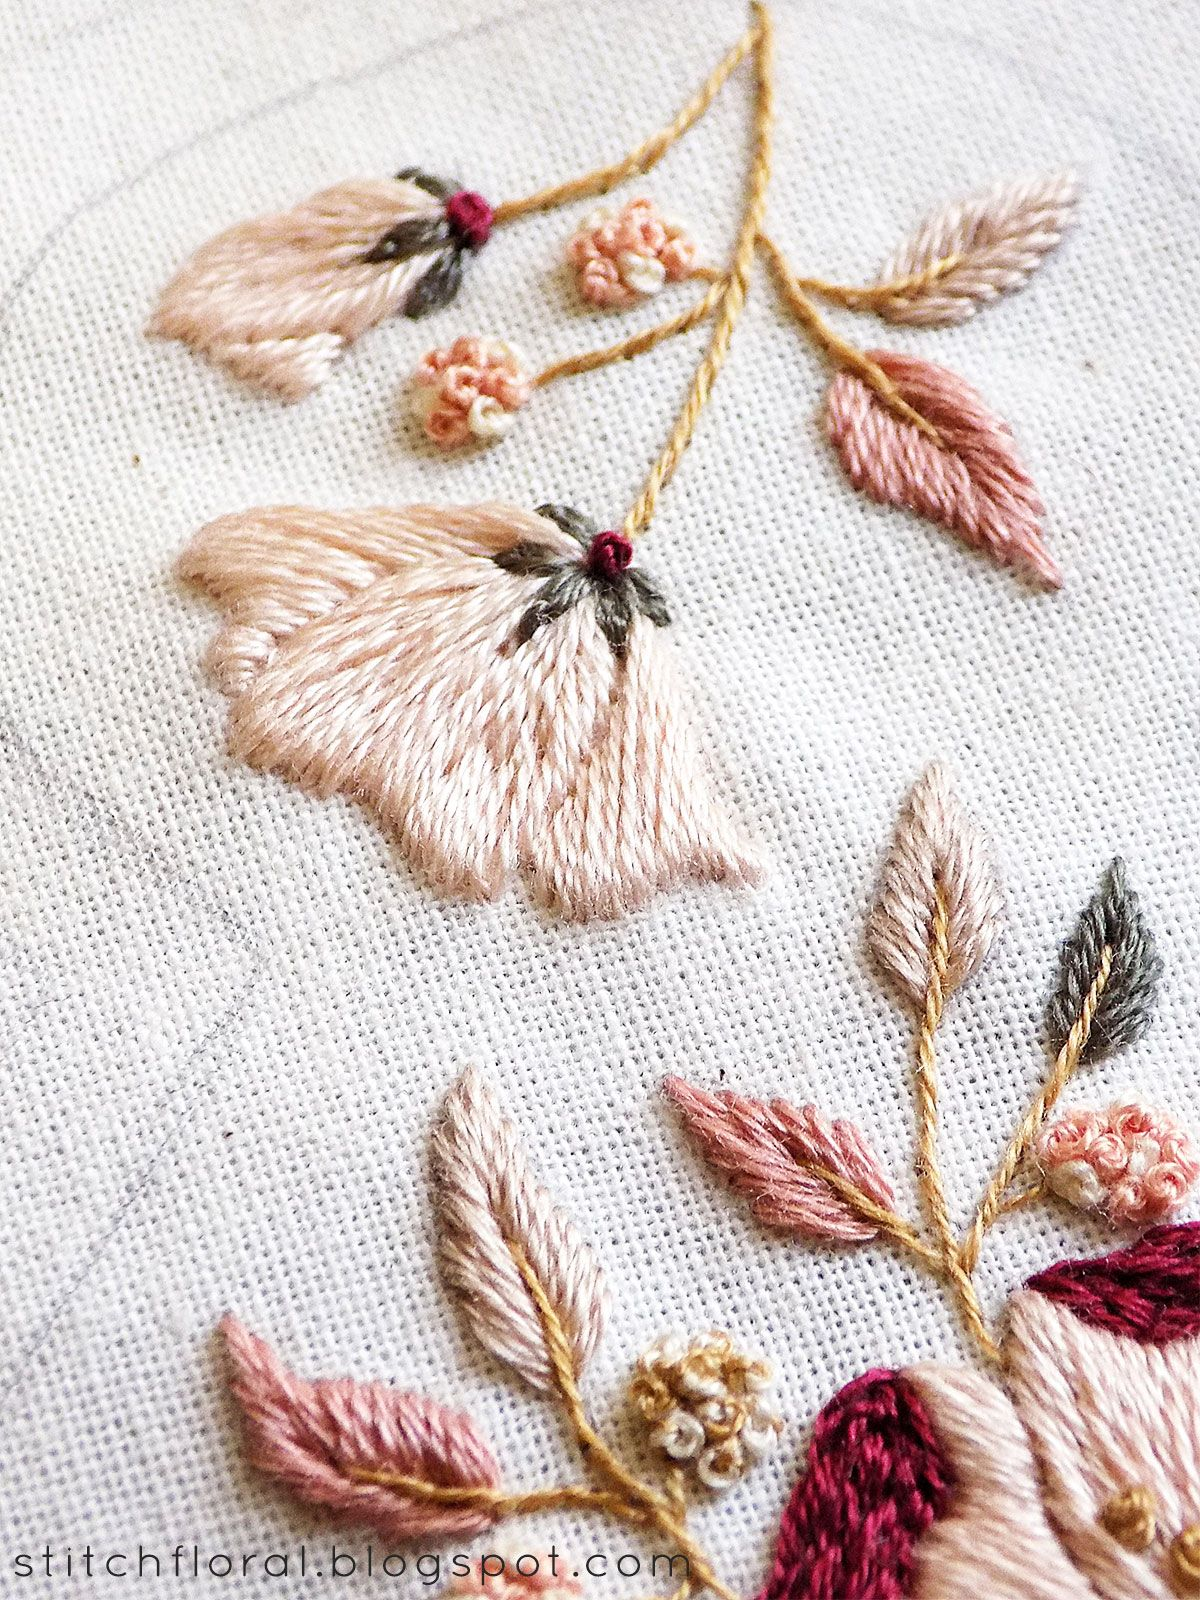 #floralembroidery